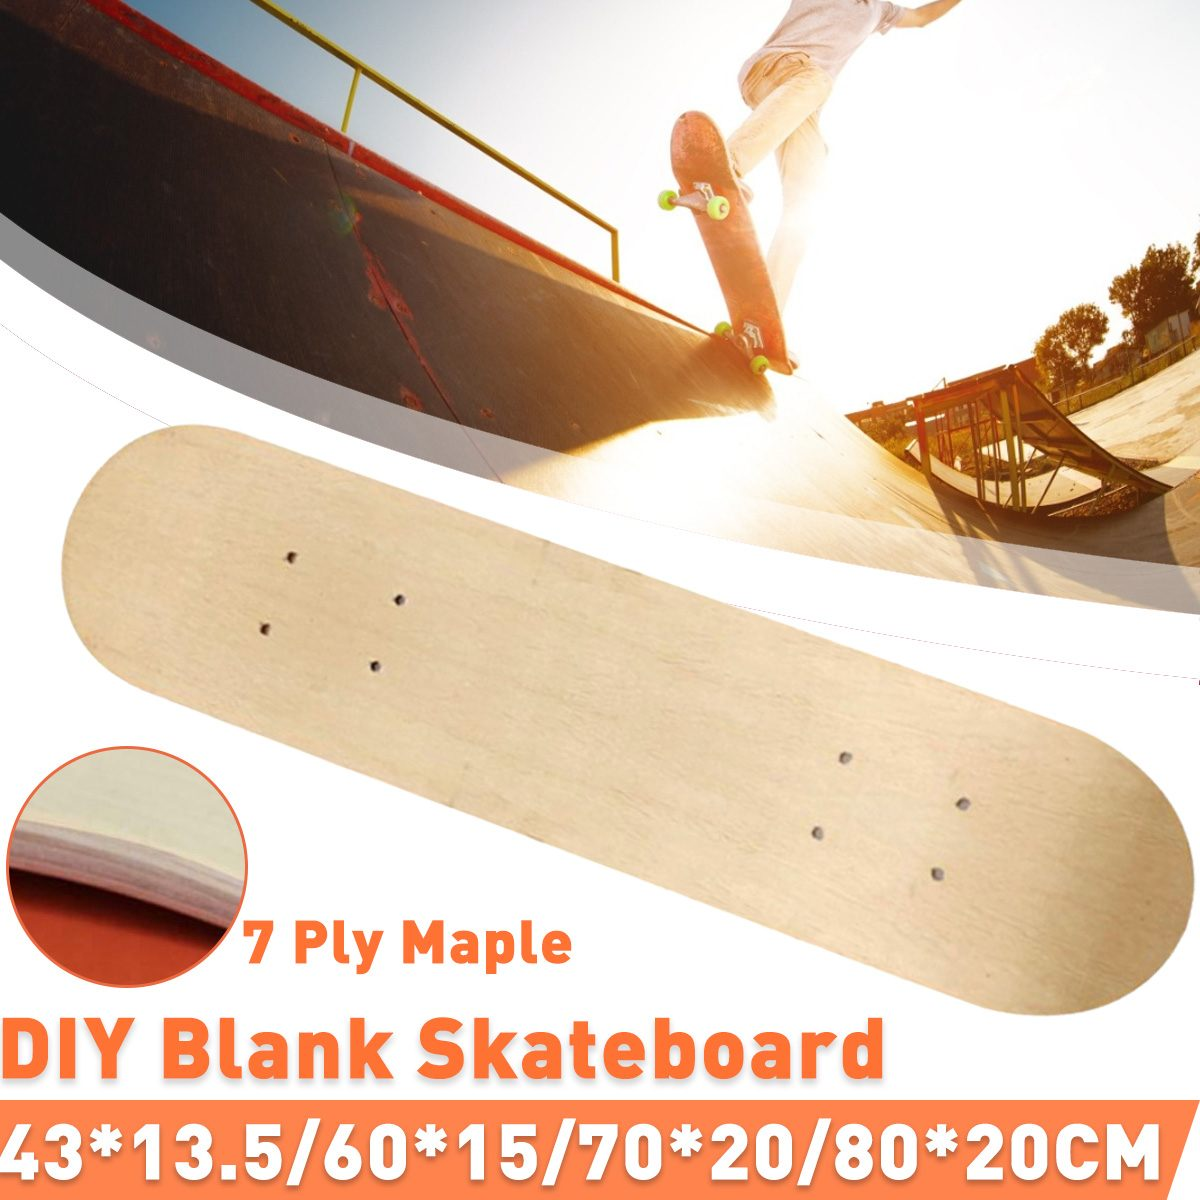 7-layer Maple Long Board Deck Skateboard Dance Board Panel Four Wheels Scooter Freestyle Road Board DIY Skate Board Deck